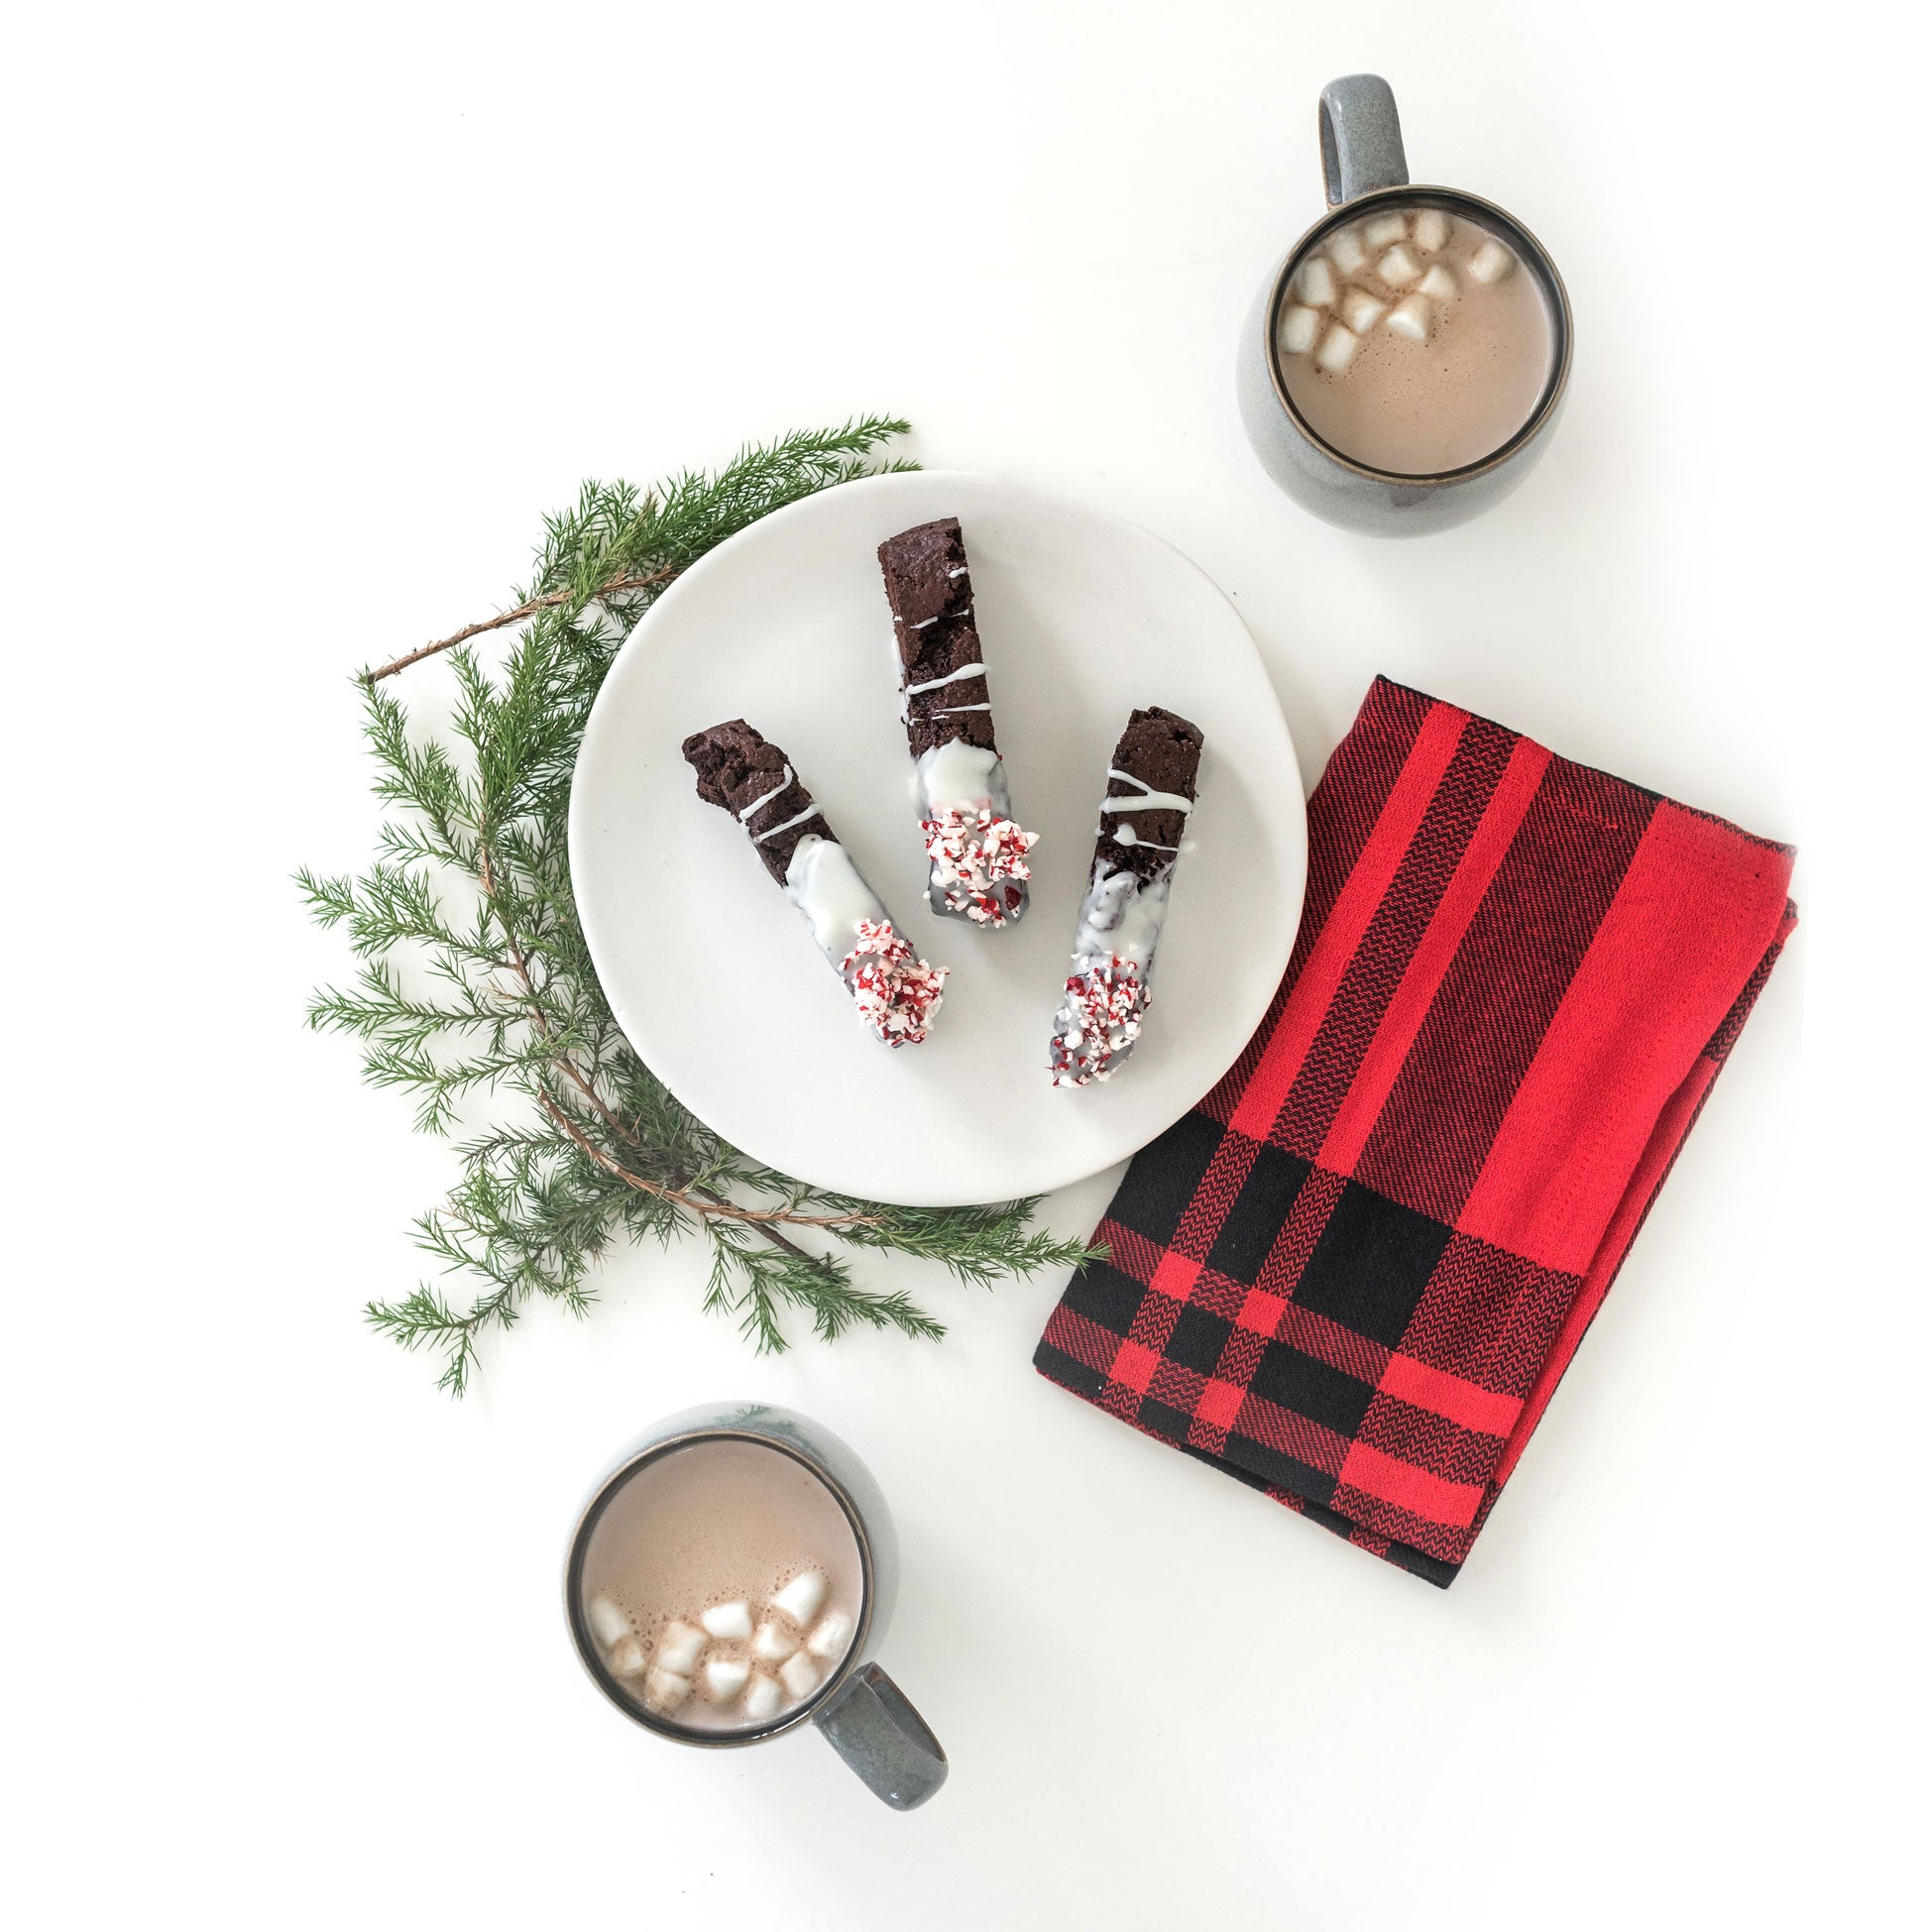 Image from above of three Miss Jones Baking Co Easy Chocolate Peppermint Cake Mix Biscotti cookies on a white plate next to two mugs of hot chocolate with mini marshmallows, a red towel, and a sprig of Christmas tree